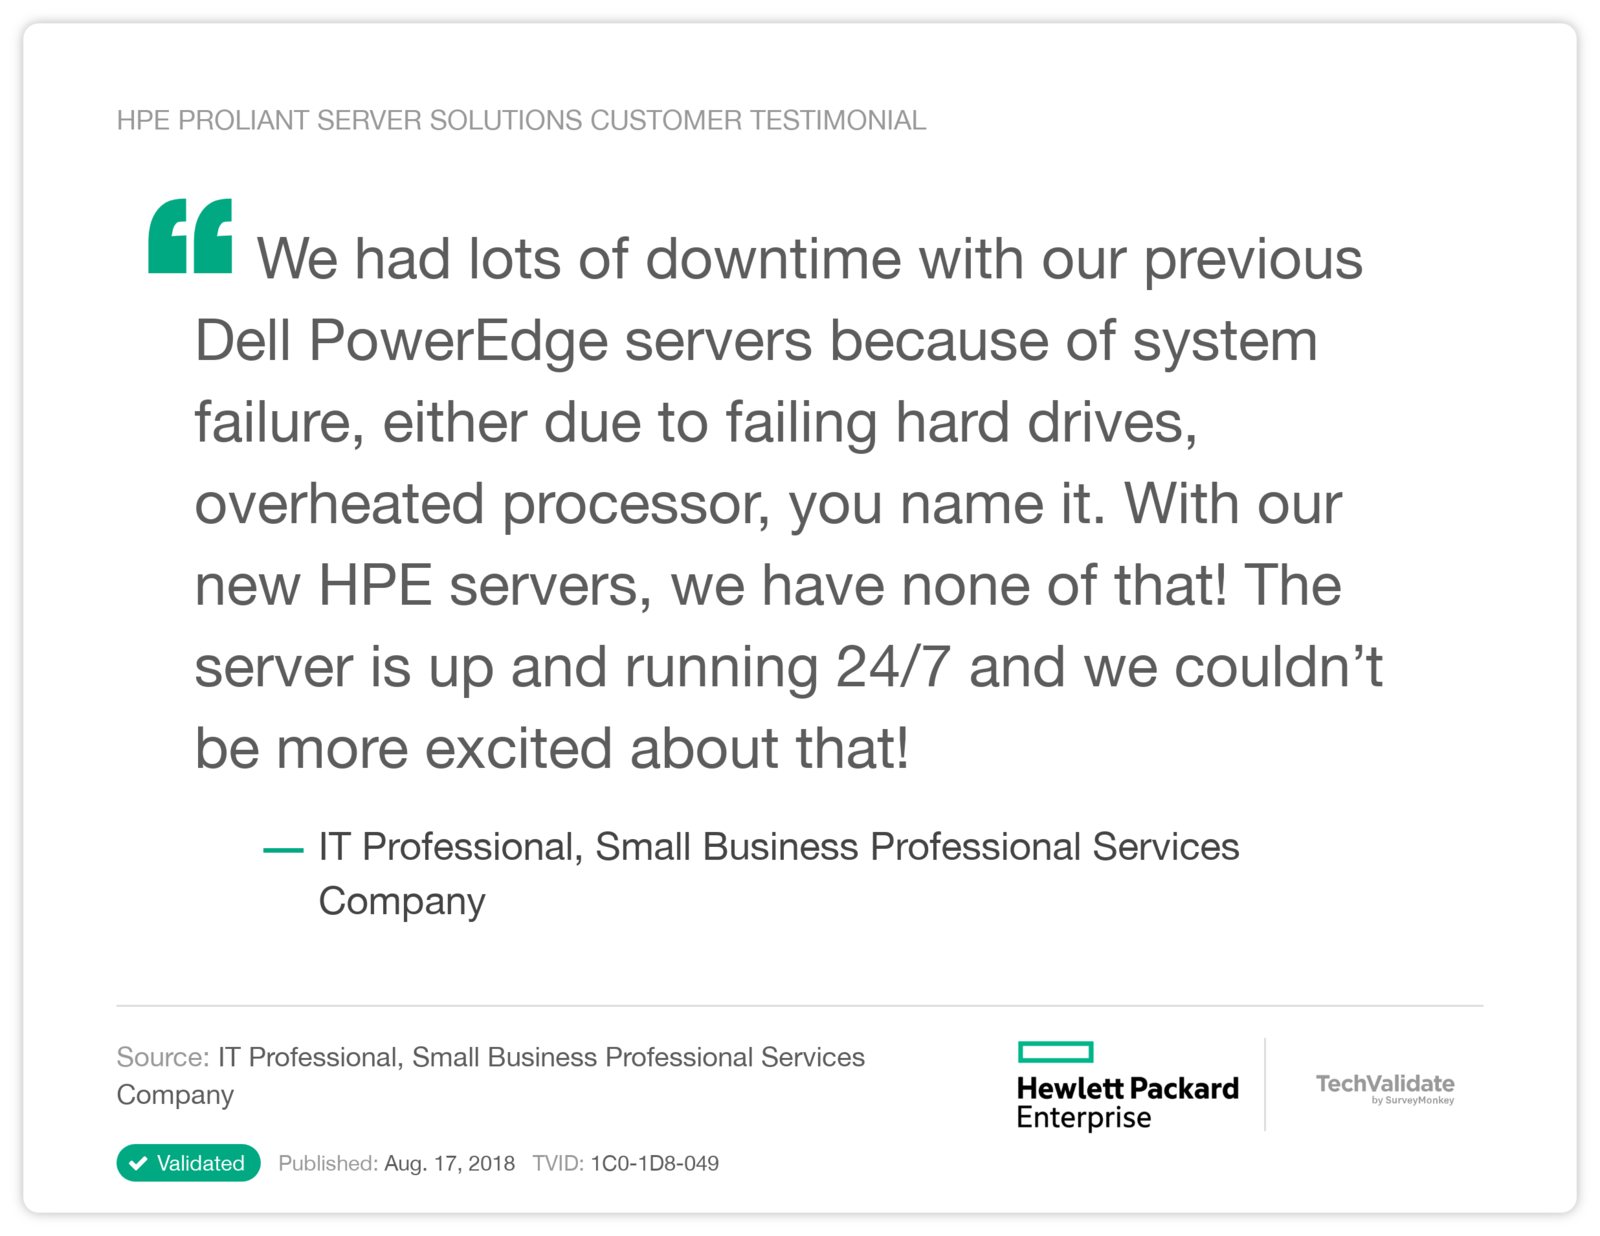 HPE ProLiant Servers - Collection of Proof Points | Hewlett Packard